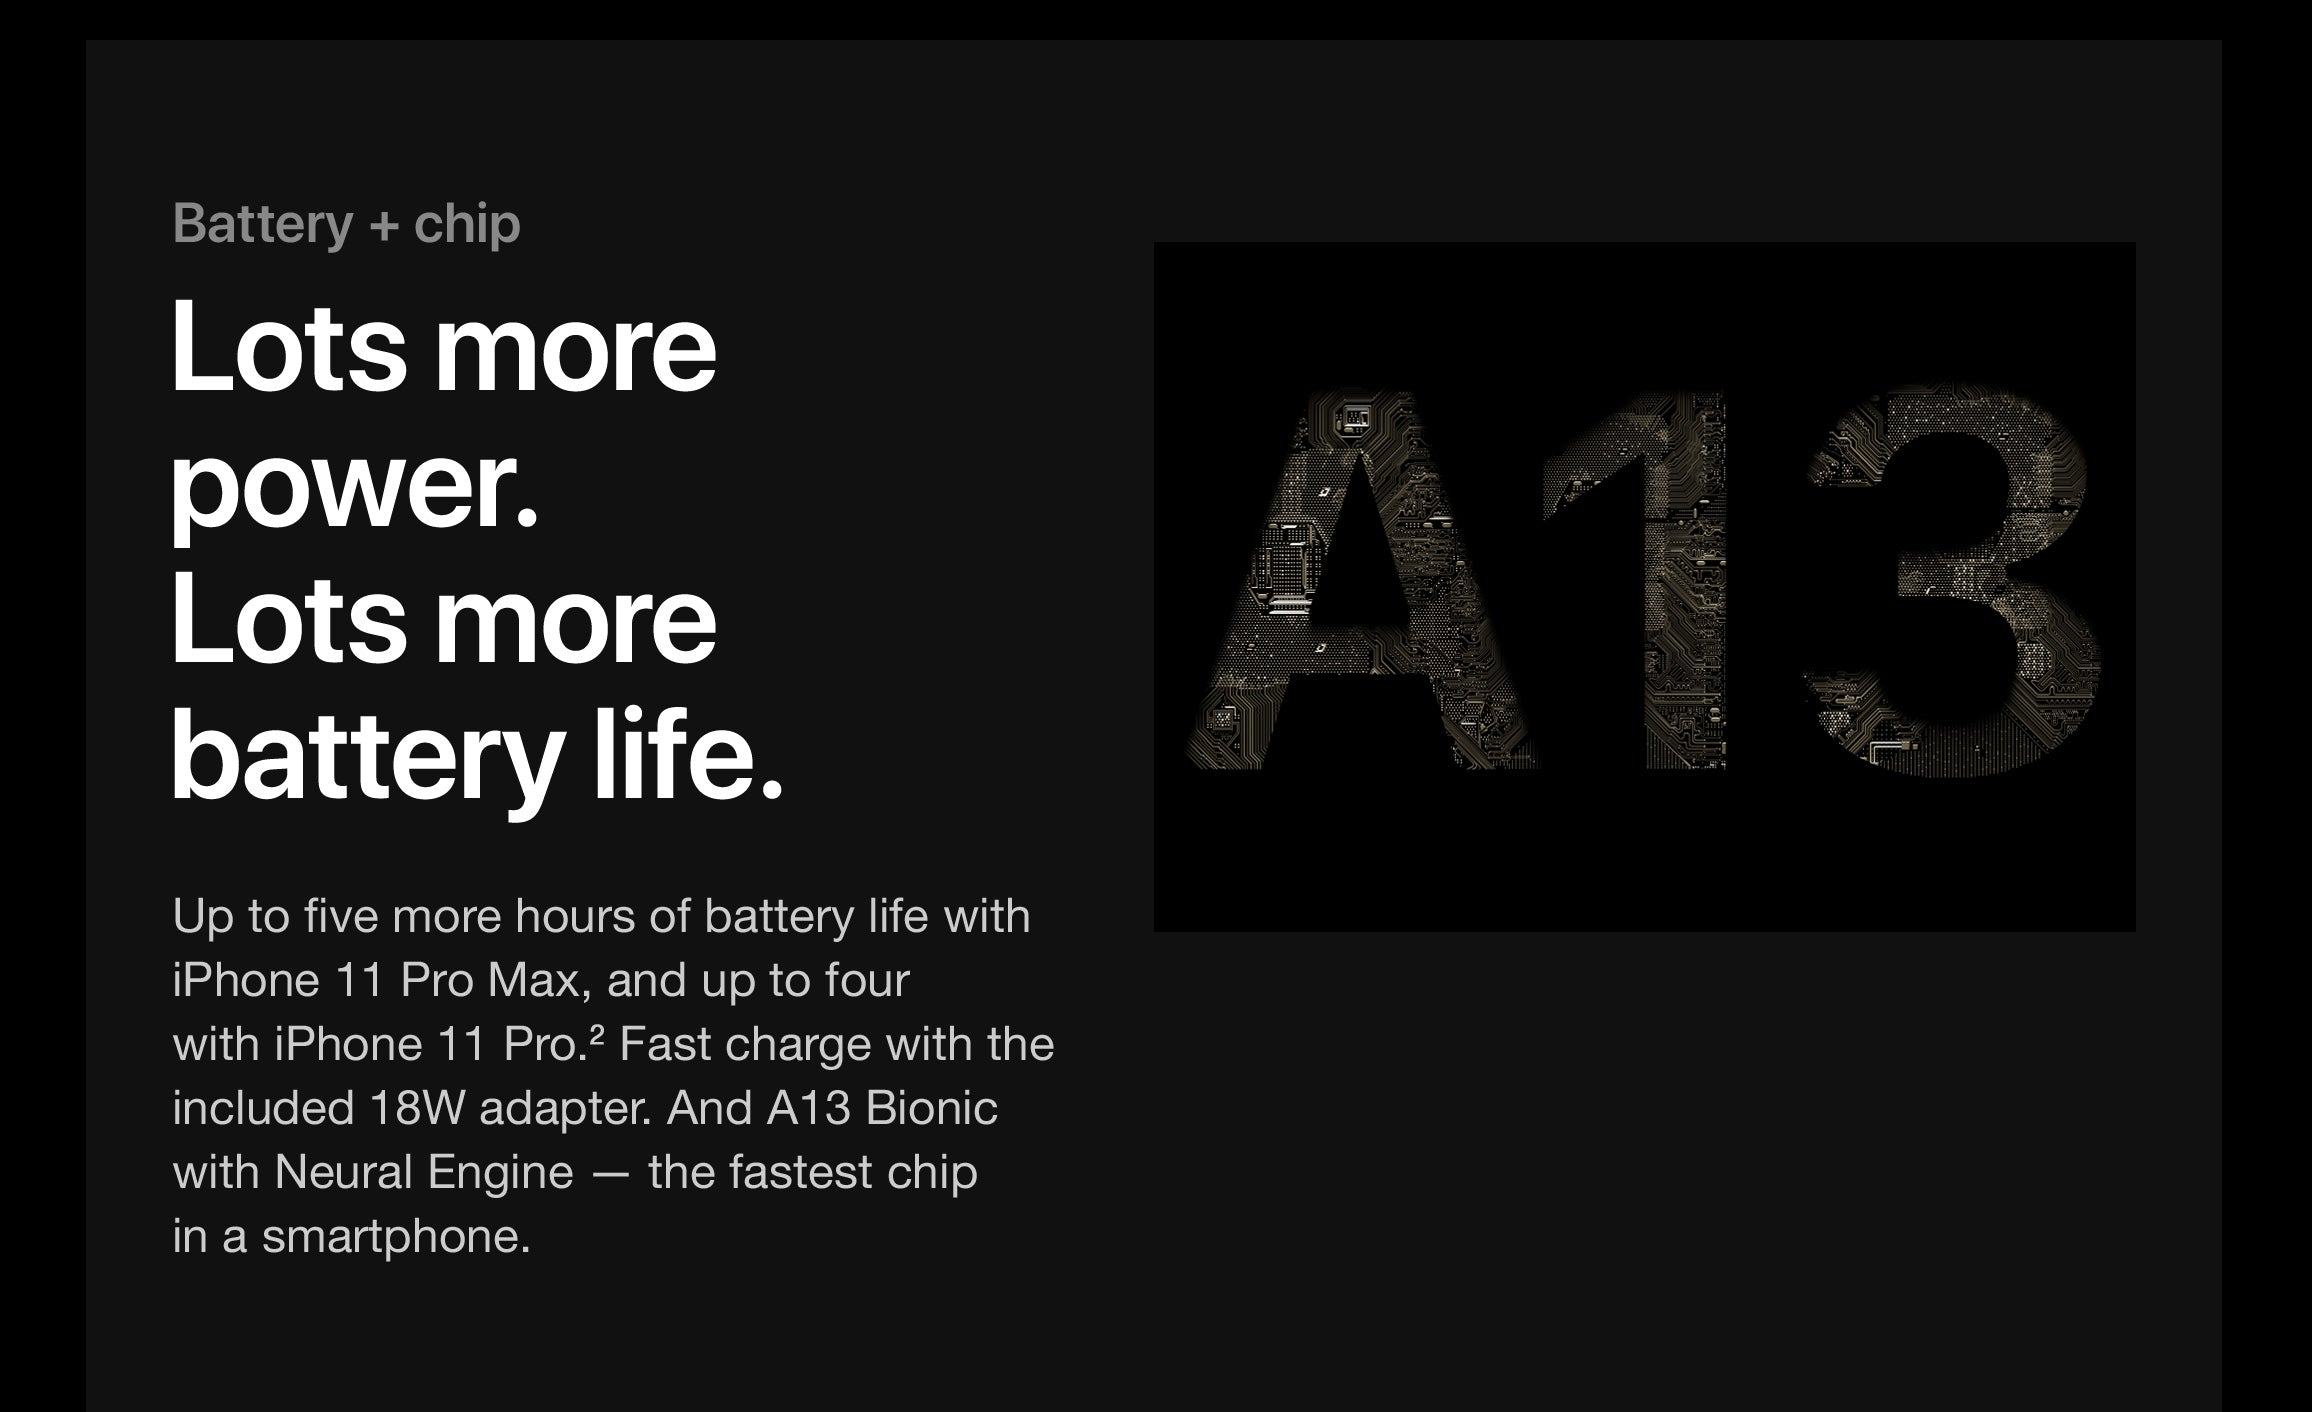 Battery + chip Lots more power. Lots more battery life. Up to five more hours of battery life with iPhone11ProMax, and up to four  with iPhone11Pro.2 Fast charge with the included 18W adapter. And A13 Bionic with Neural Engine — the fastest chip  in a smartphone.